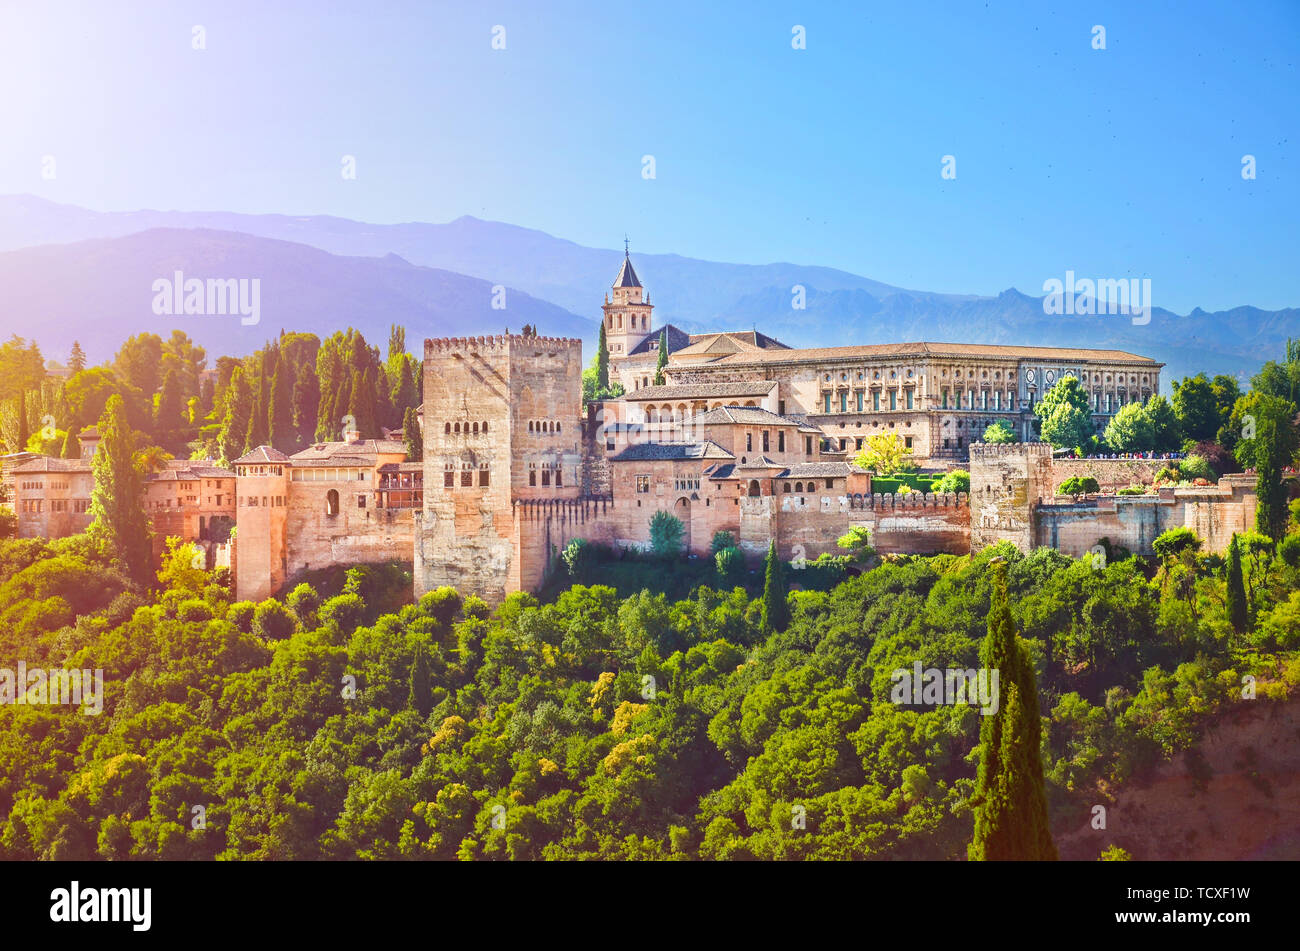 Amazing Alhambra palace complex taken in the morning in sunrise light. Beautiful piece of Moorish architecture, surrounded by green trees, is located in Granada, Spain. Stock Photo